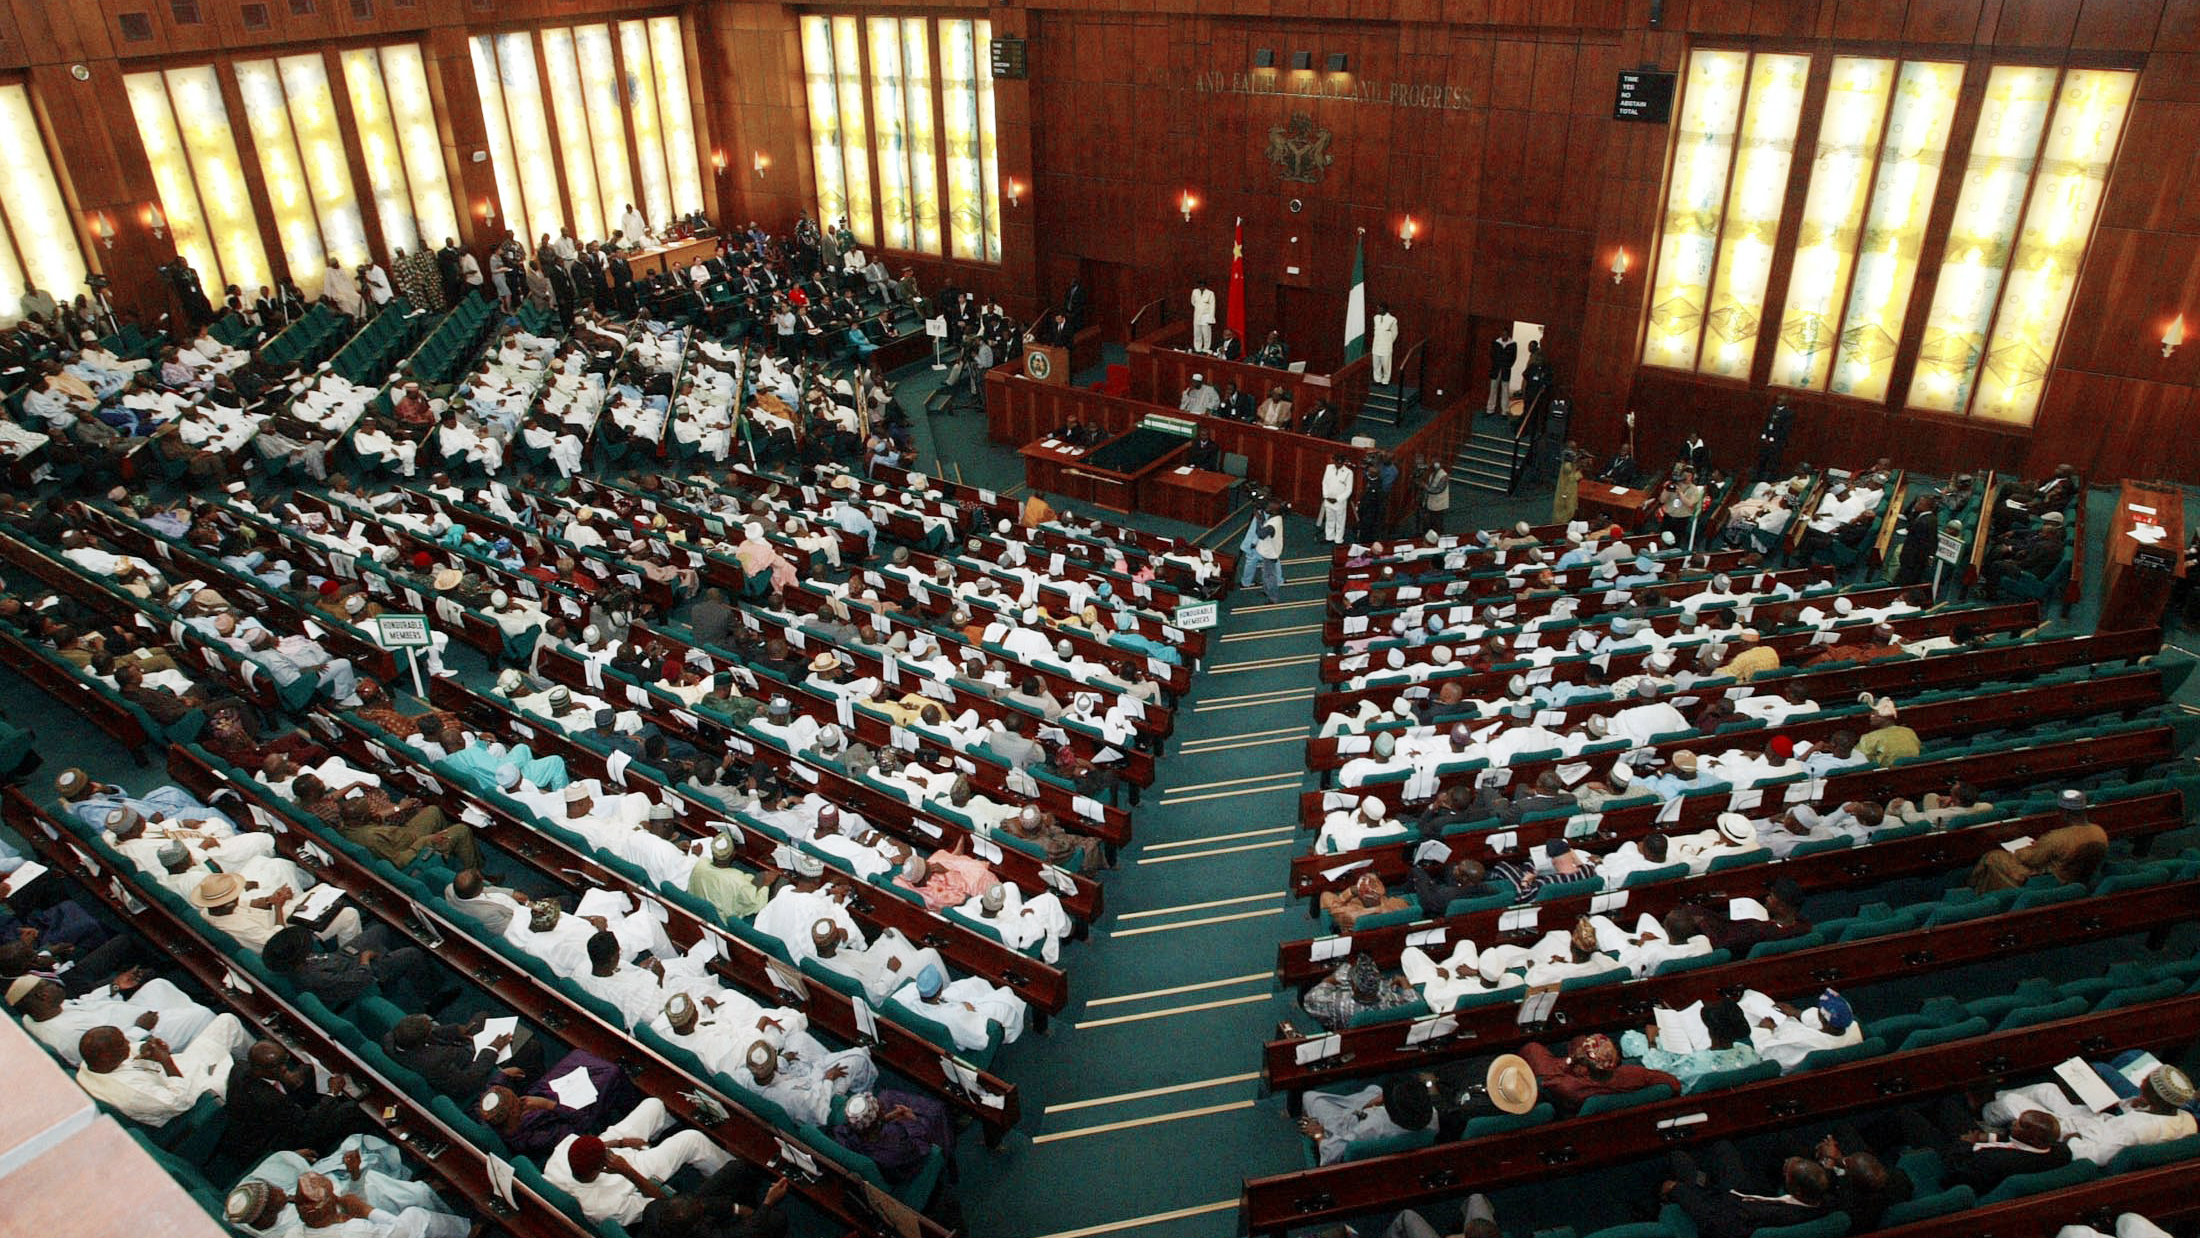 The Nigerian senate is live-streaming its legislative